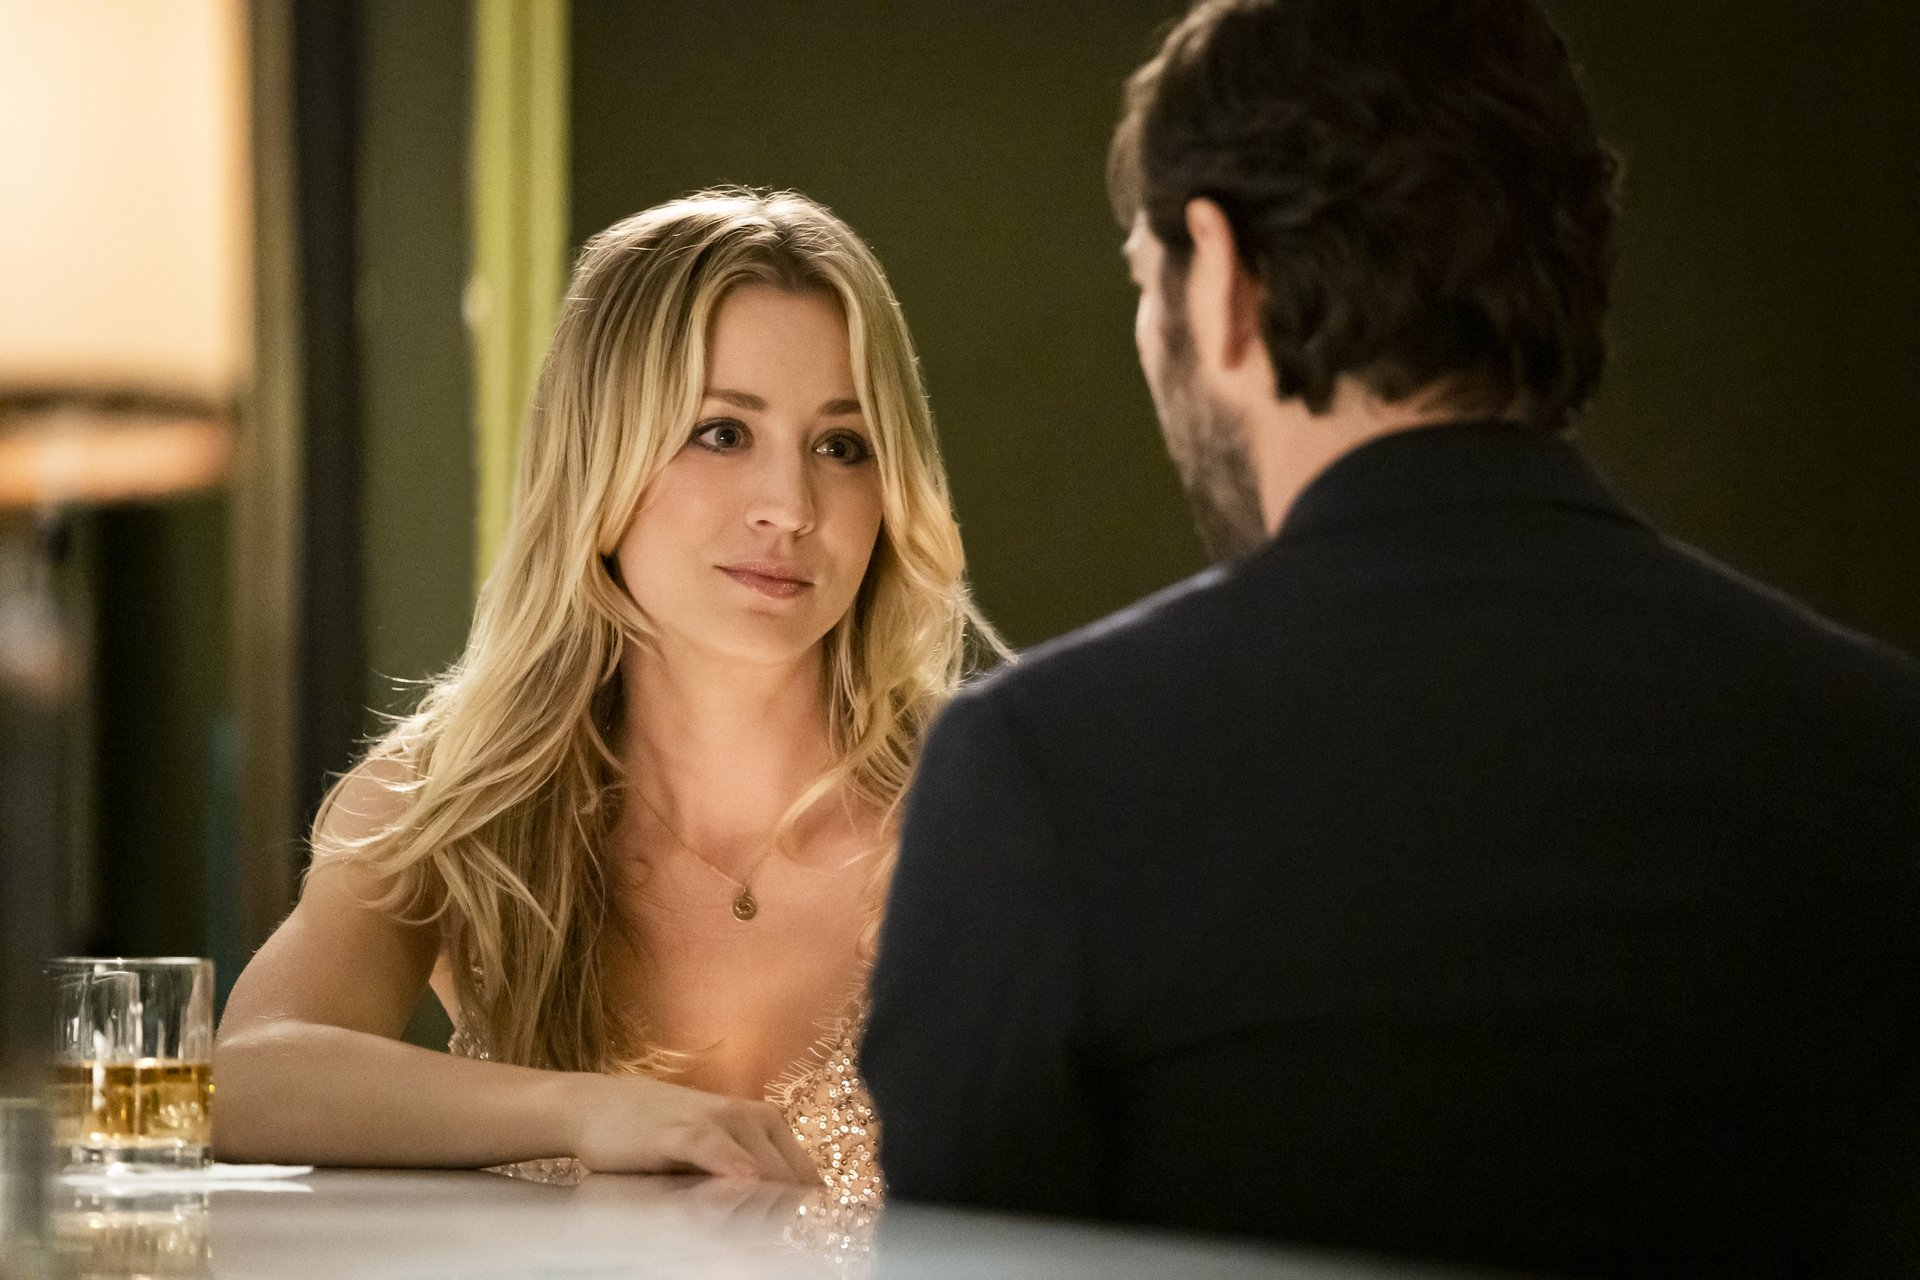 Kaley Cuoco (L) and Michiel Huisman in a scene from 'The Flight Attendant.' Cuoco was nominated for an Emmy Award for outstanding leading actress in a comedy series. (HBO Max via AP)